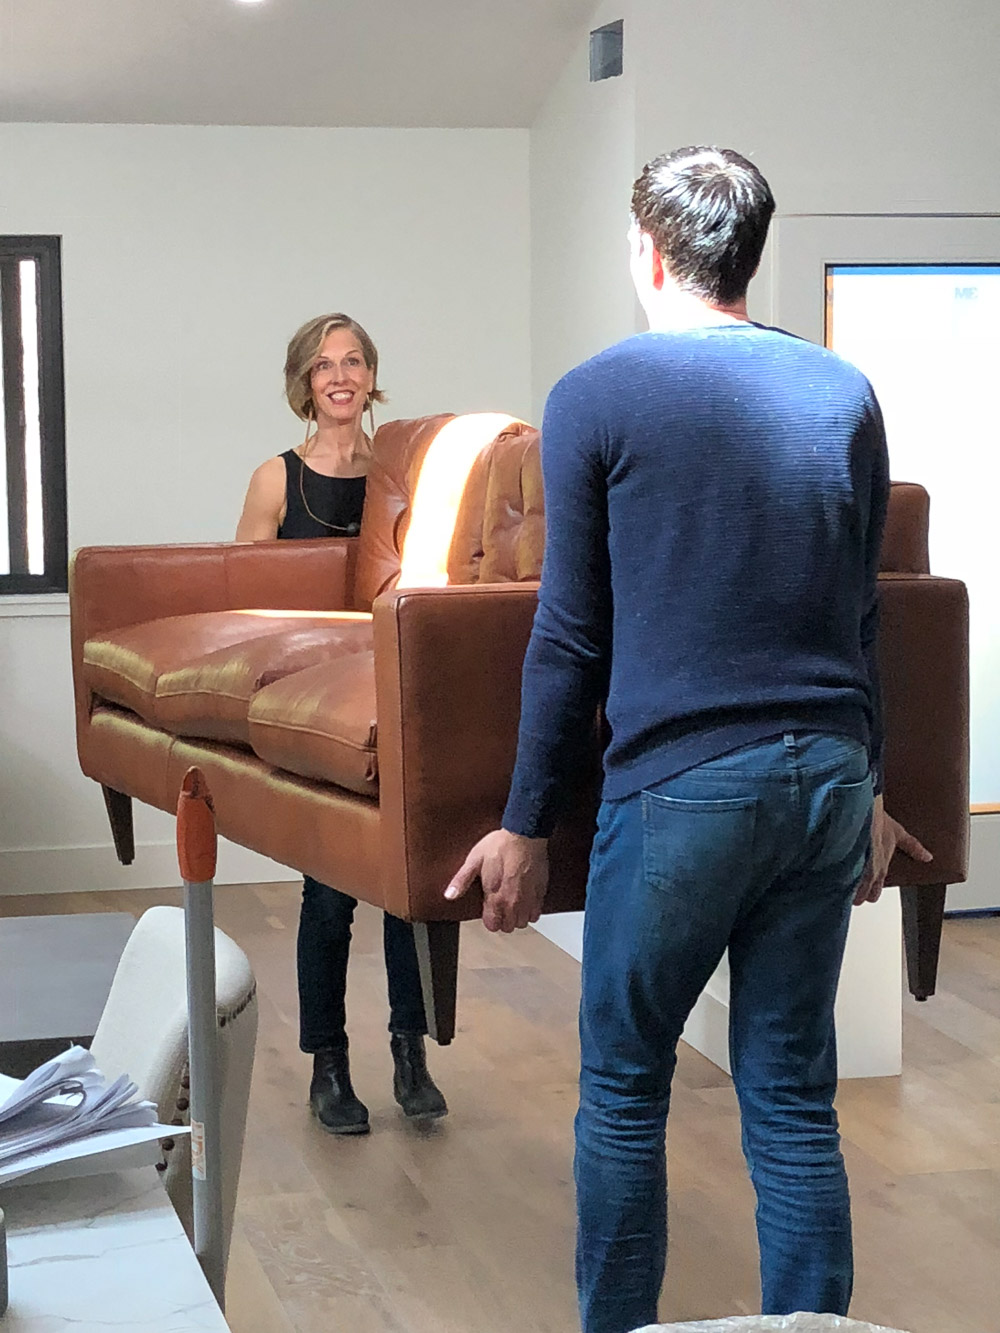 A woman and a man moving a brown leather sofa.